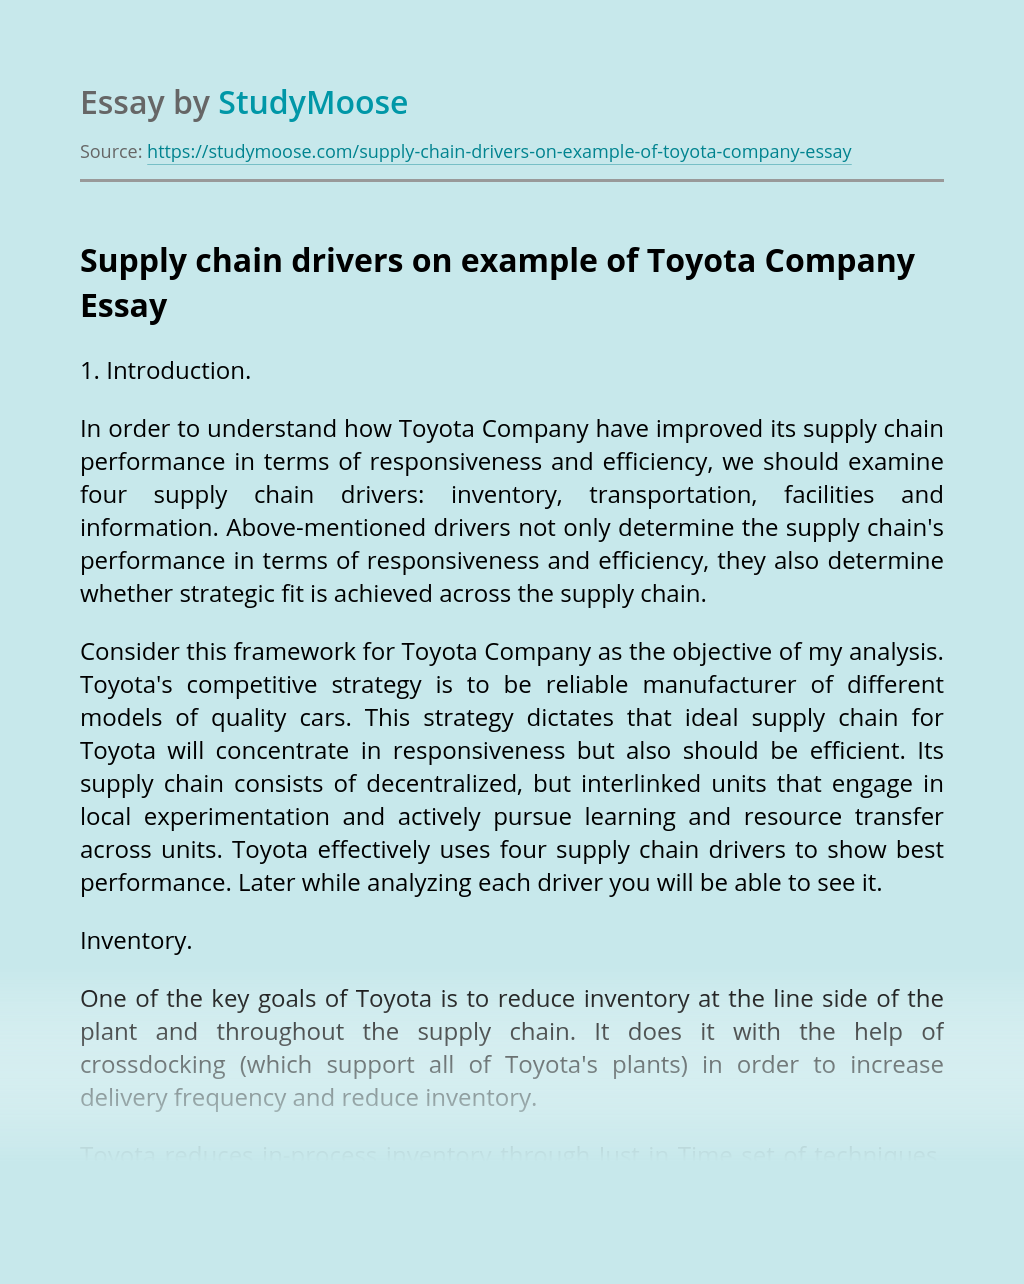 Supply chain drivers on example of Toyota Company